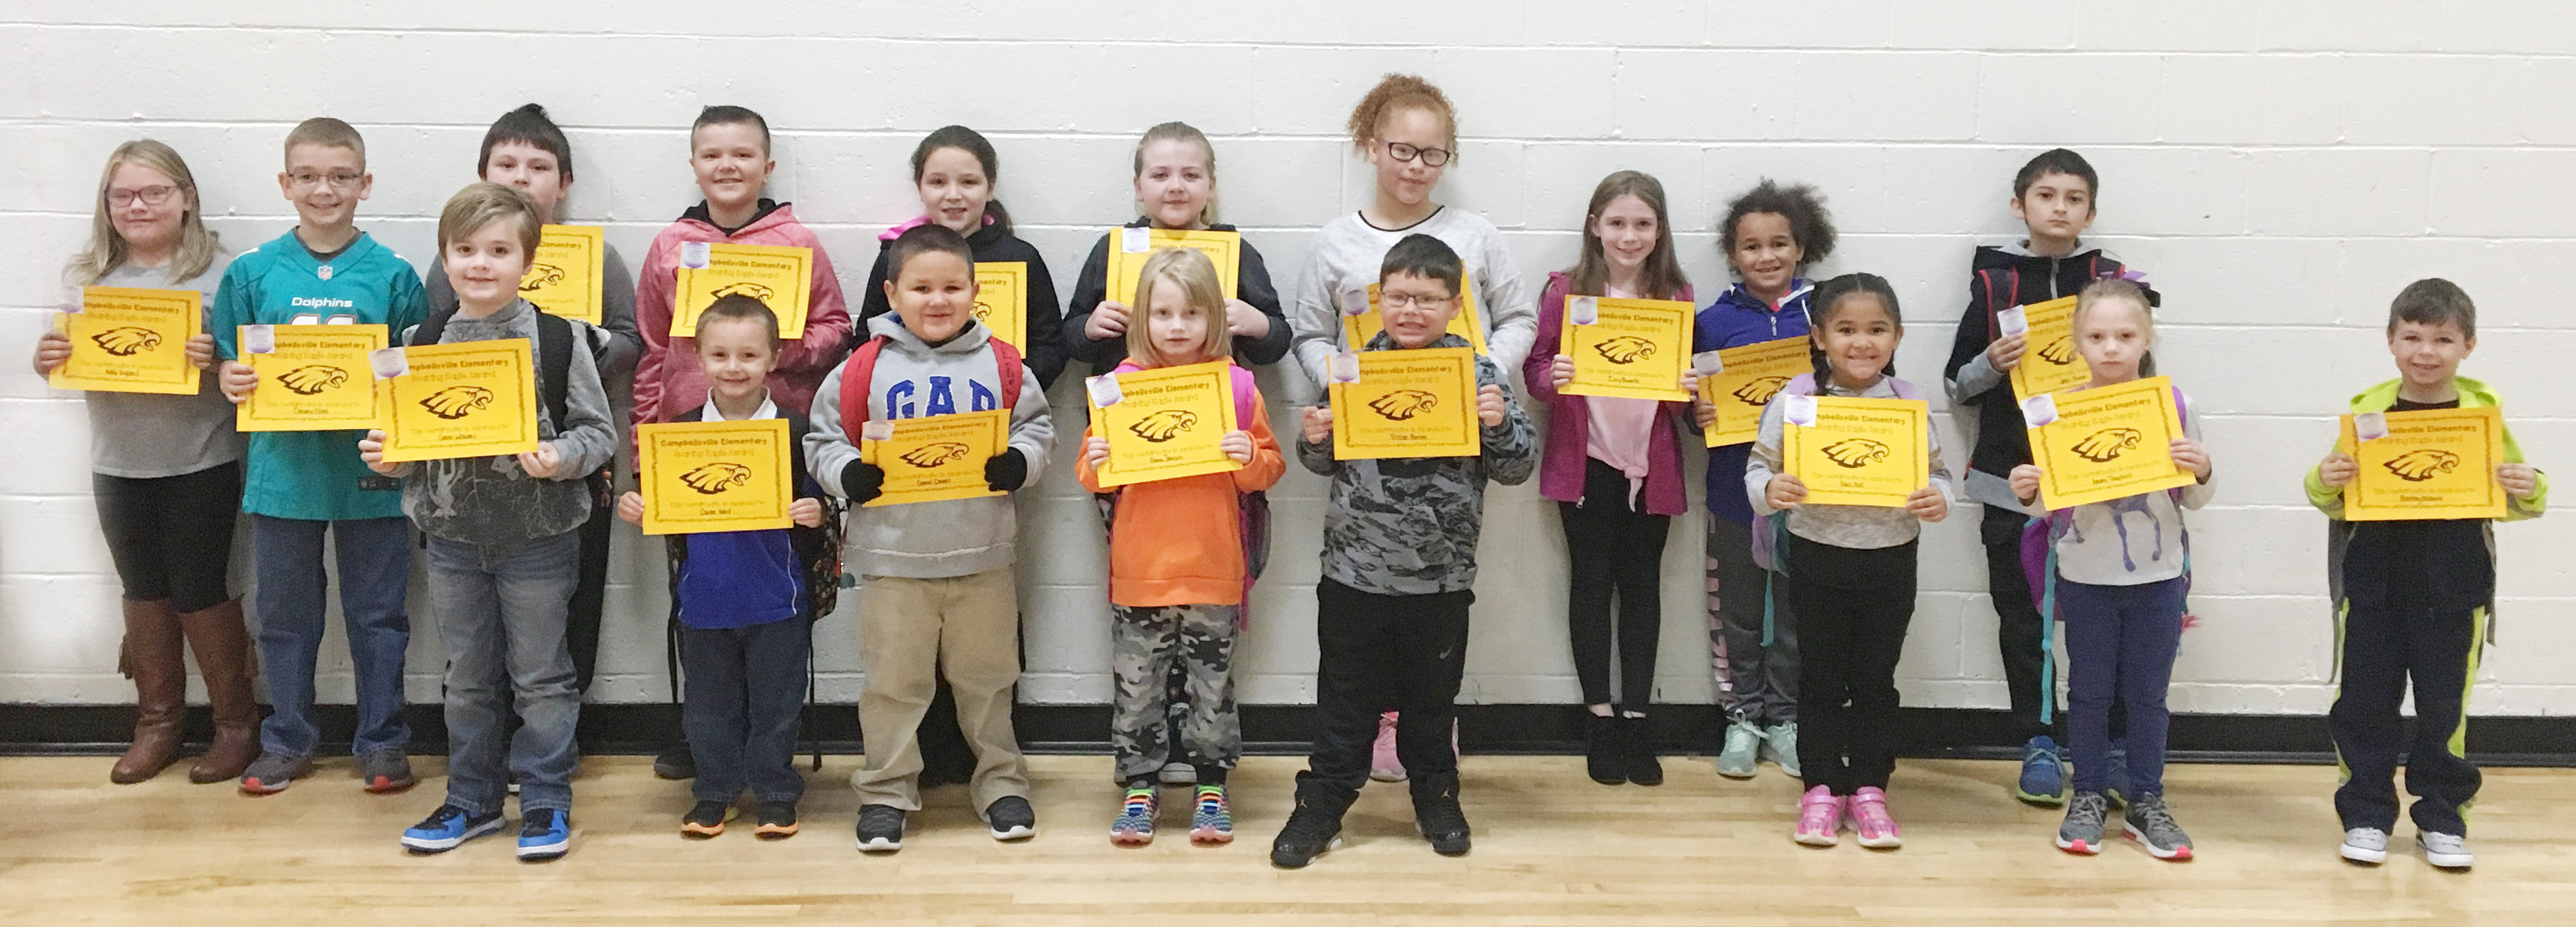 From left, front, are second-grader Gavin Williams, first-grader Carter Ward, kindergarteners Daniel Devers and Emma Johnson, second-grader Tristan Burton, kindergartener Paris Washington-Hall and first-graders Amary Tompkins and Bentley Wilhoite. Back, third-grader Addysen England, fifth-grader Cameron Estes, third-grader Fabrizio Segura, fourth-graders Cayton Lawhorn and Keely Rakes, third-grader London Whitlow, fourth-grader Kallie Taylor, third-grader Izzy Brunelle, kindergartener Mariah Travis and fifth-grader Jadyn Ortiz-Bruner. Absent from the photo are kindergartener Colton Lamer and fifth-graders Grayson Dooley, Aliyah Burton and Kealey Mann.